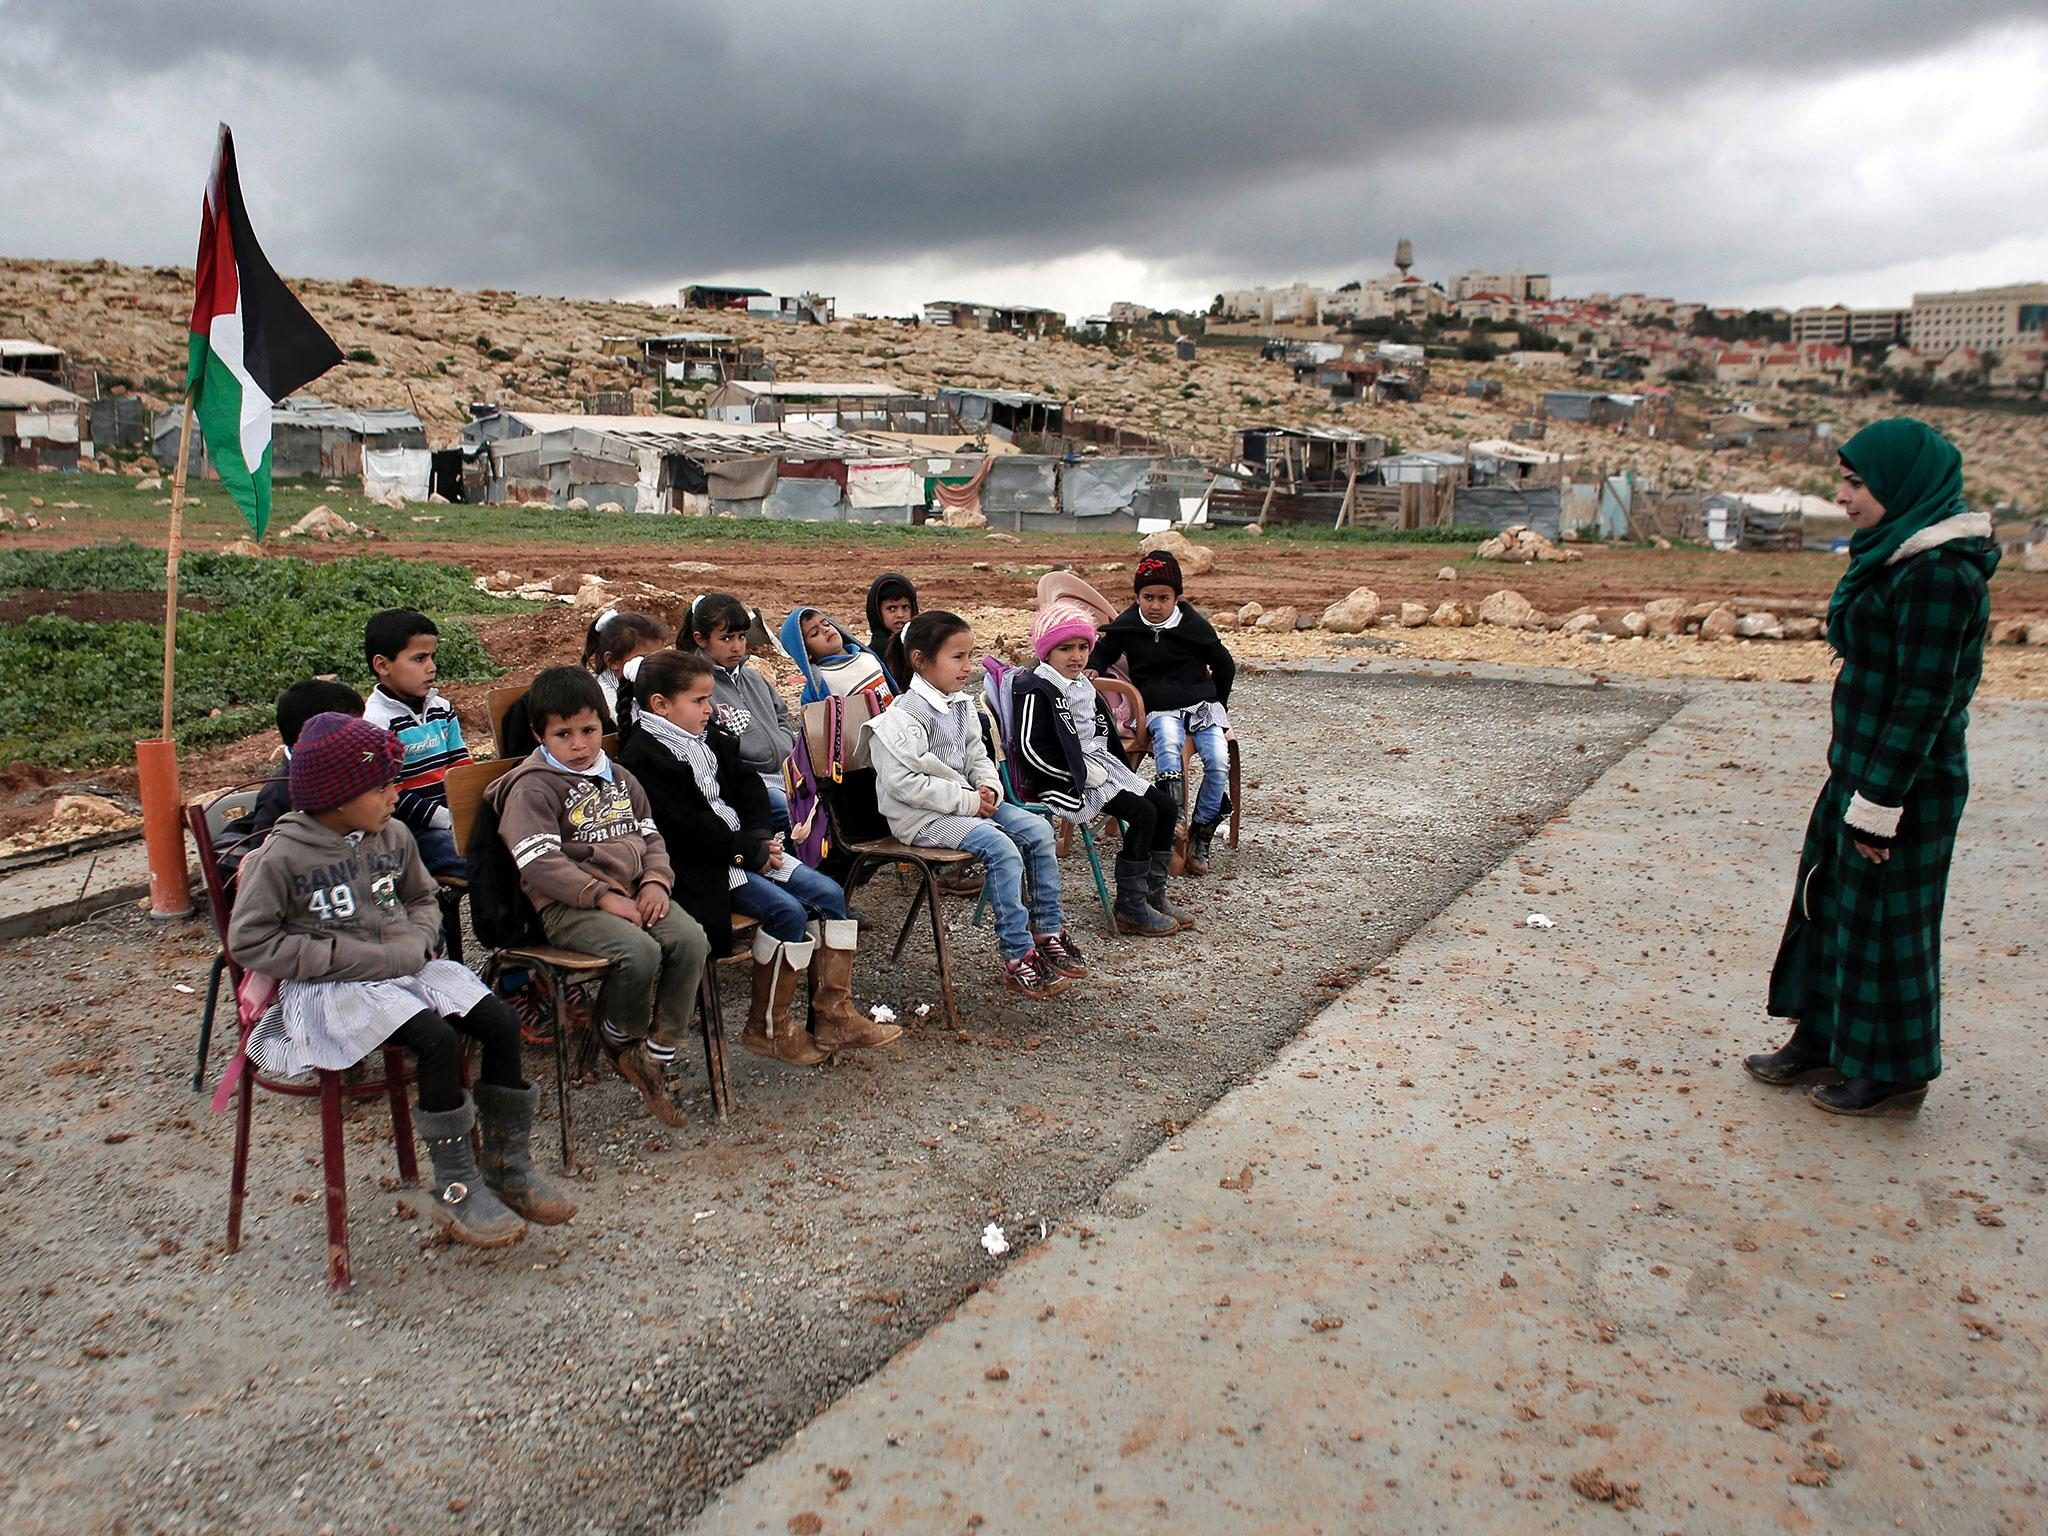 West Bank settlements: Eight EU countries demand Israel pay for demolished Palestinian schools